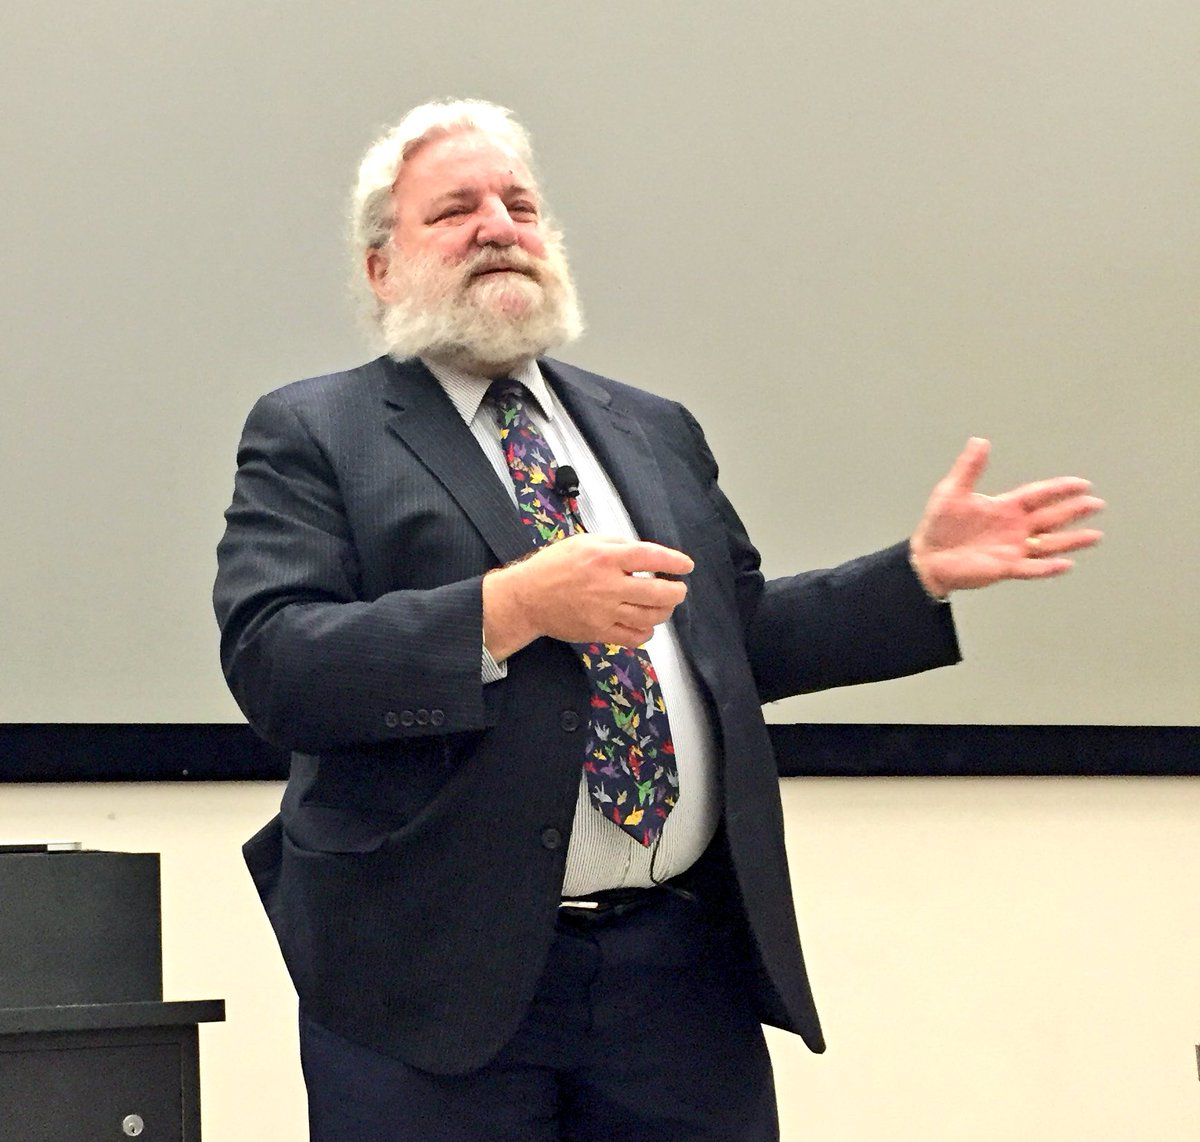 Dr. David Helfand: communication, collaboration and resilience - most valuable skills in today's world #STLHE16 https://t.co/a8LS8PAsbw